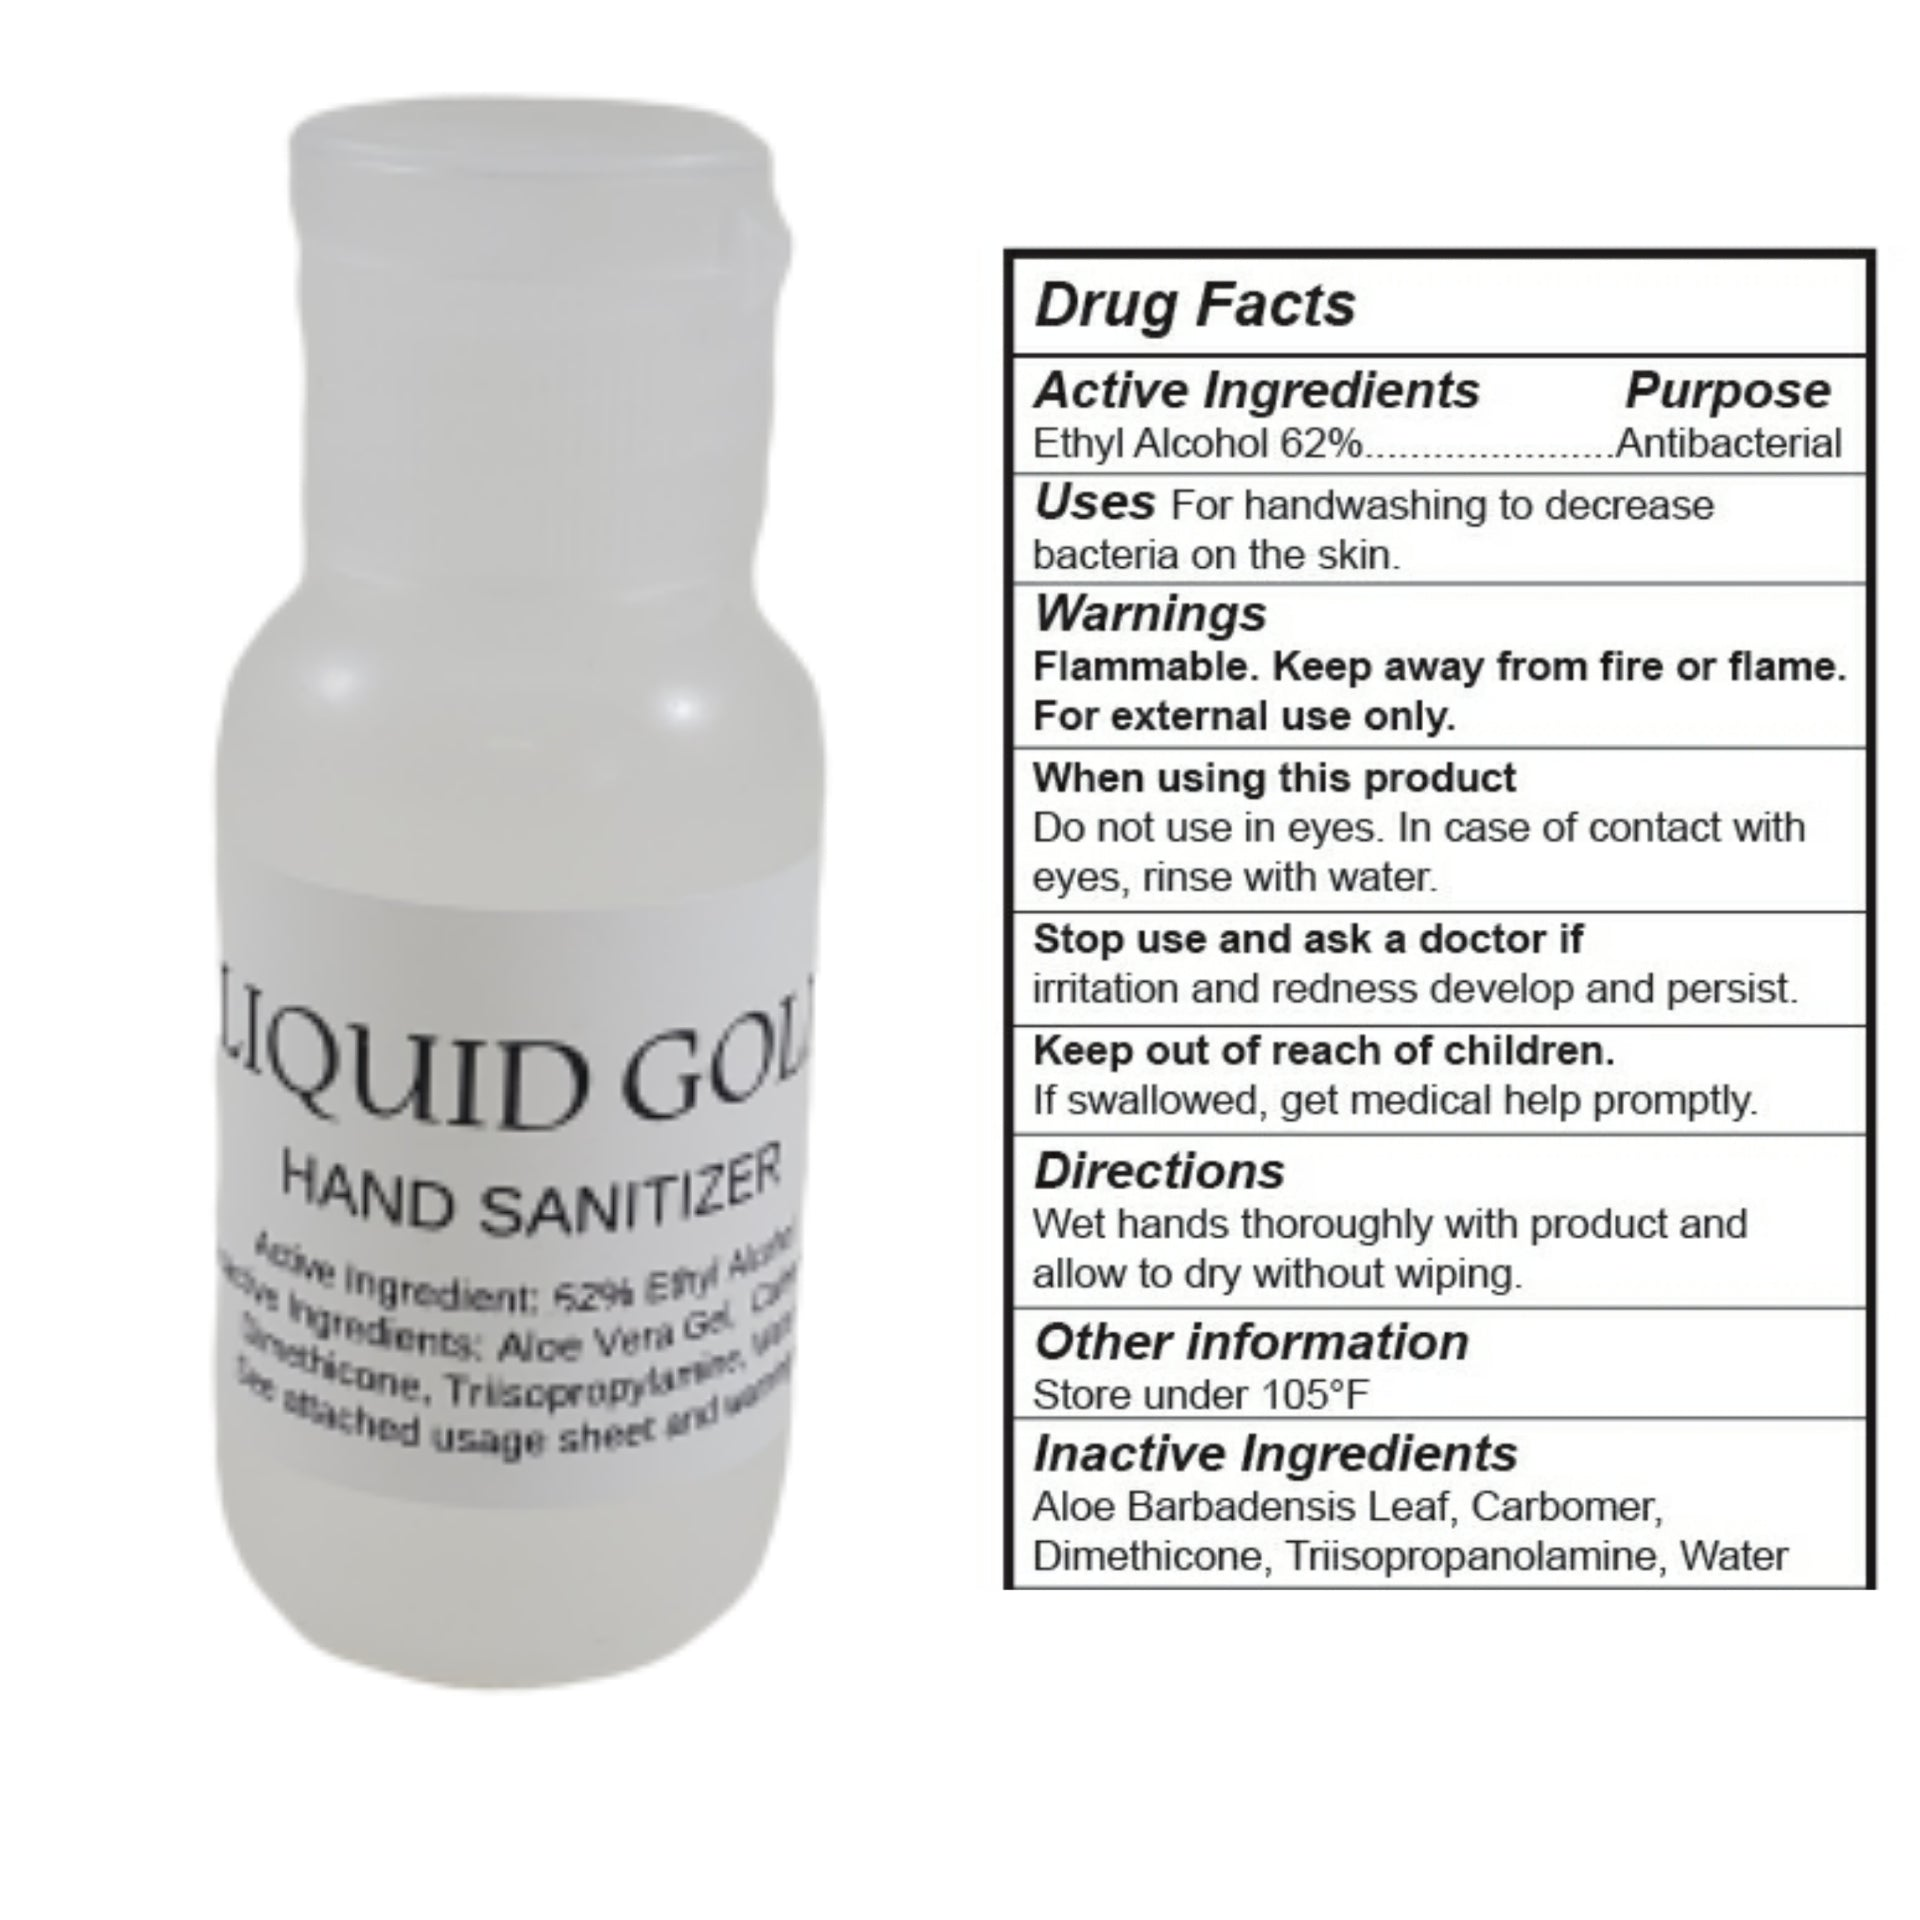 Hand Sanitizer - Quantities Limited